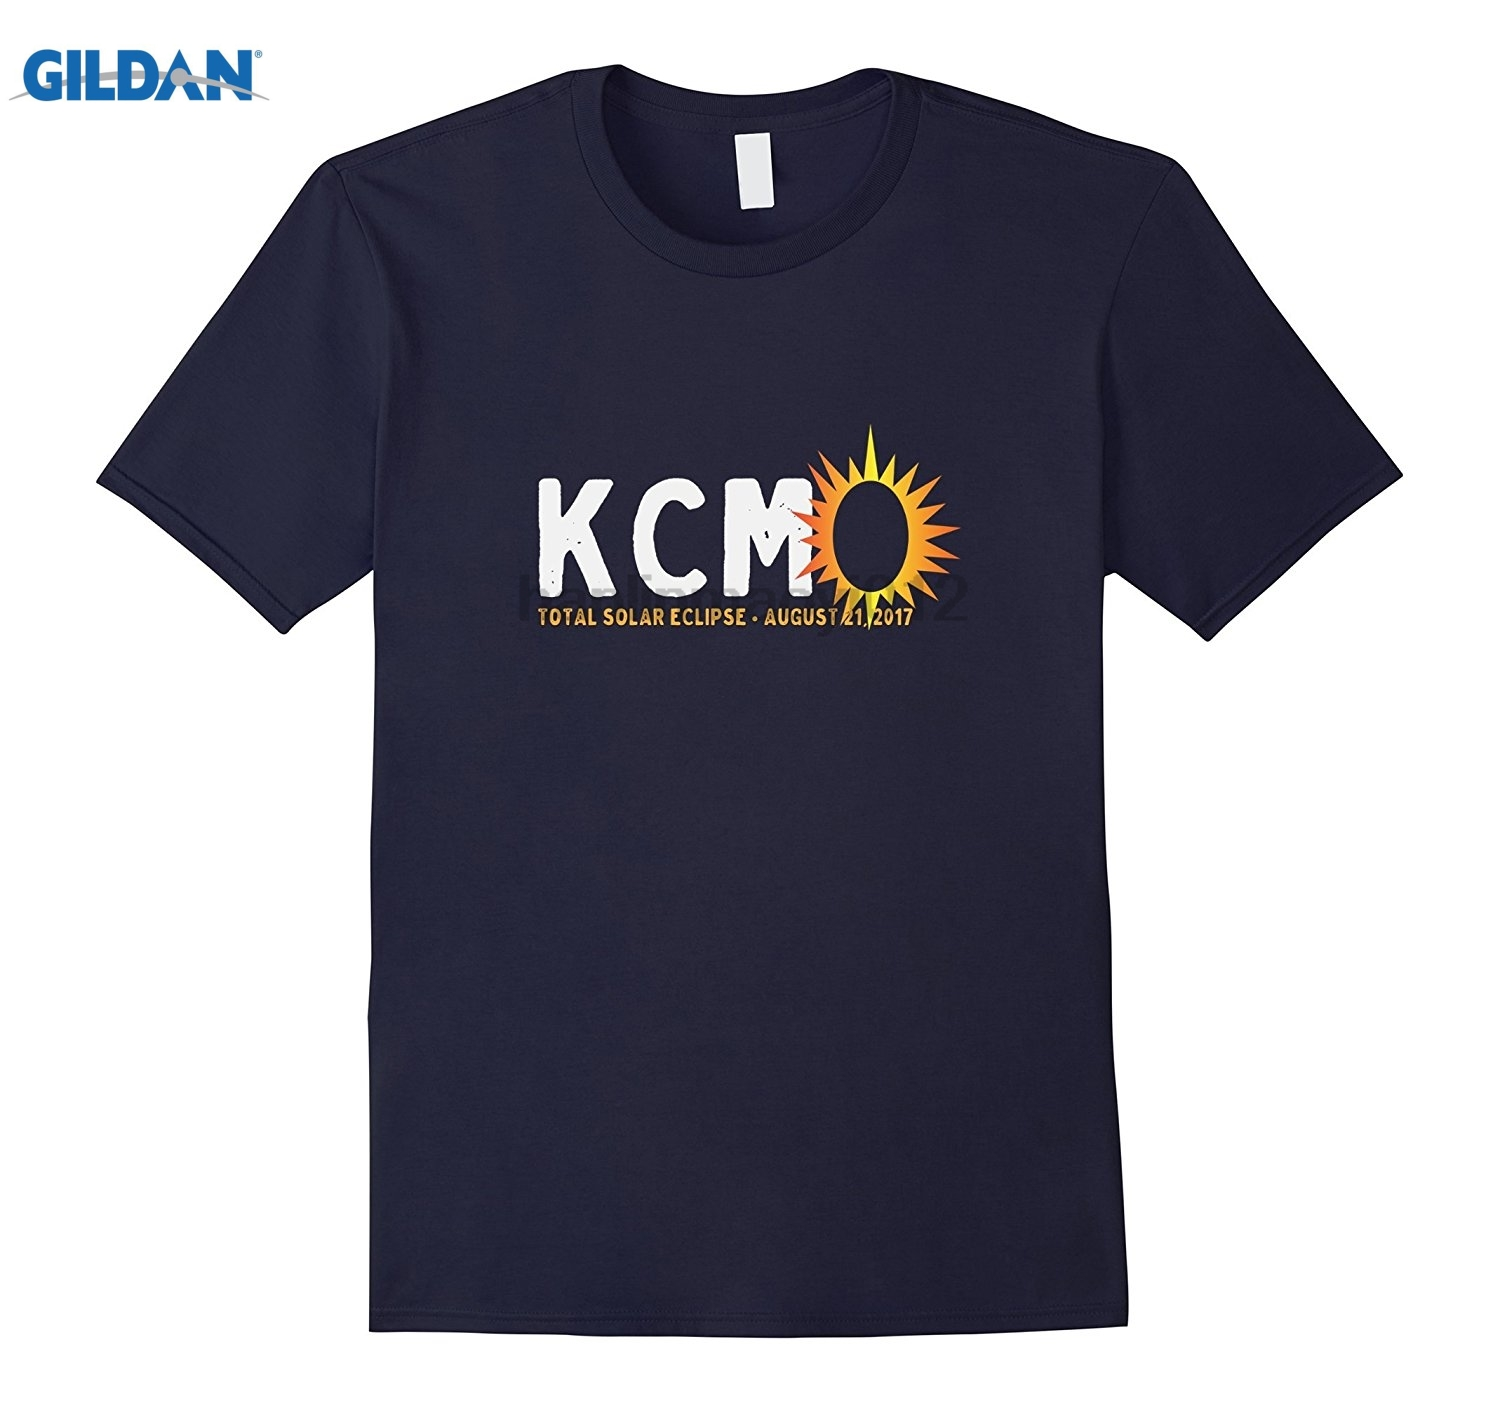 GILDAN KCMO Total Eclipse T-shirt Mothers Day Ms. T-shirt summer dress T-shirt Womens T-shirt